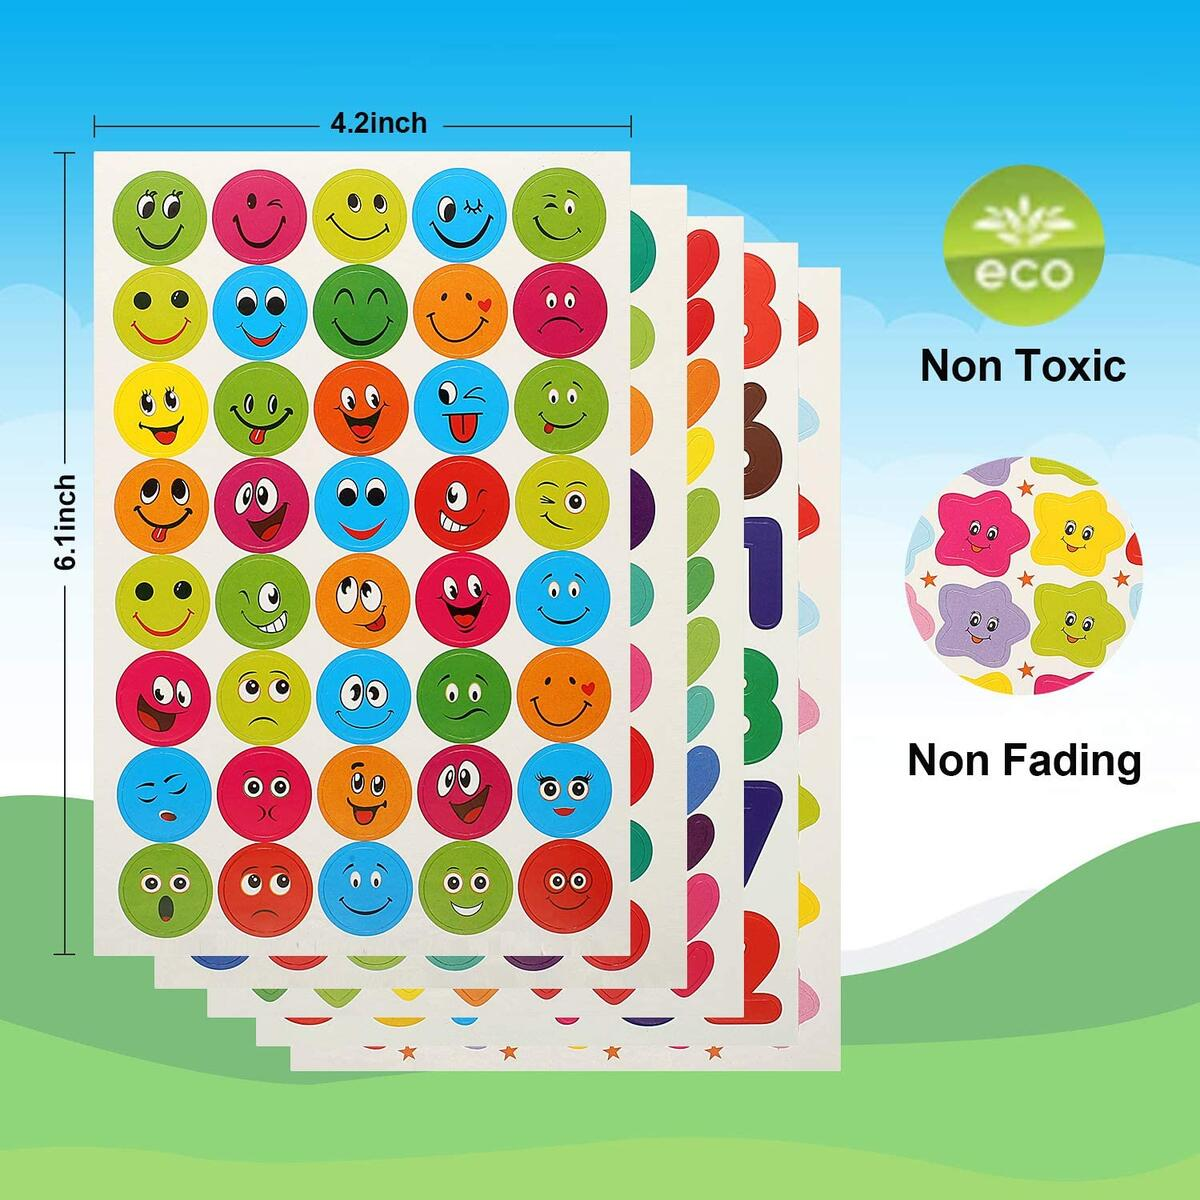 Stickers for Kids - Kid Stickers Teacher Stickers Sheets 5800 Pieces Reward Stickers Homeschool Stickers Smiley Face Star Heart Letter Number Apple Stickers